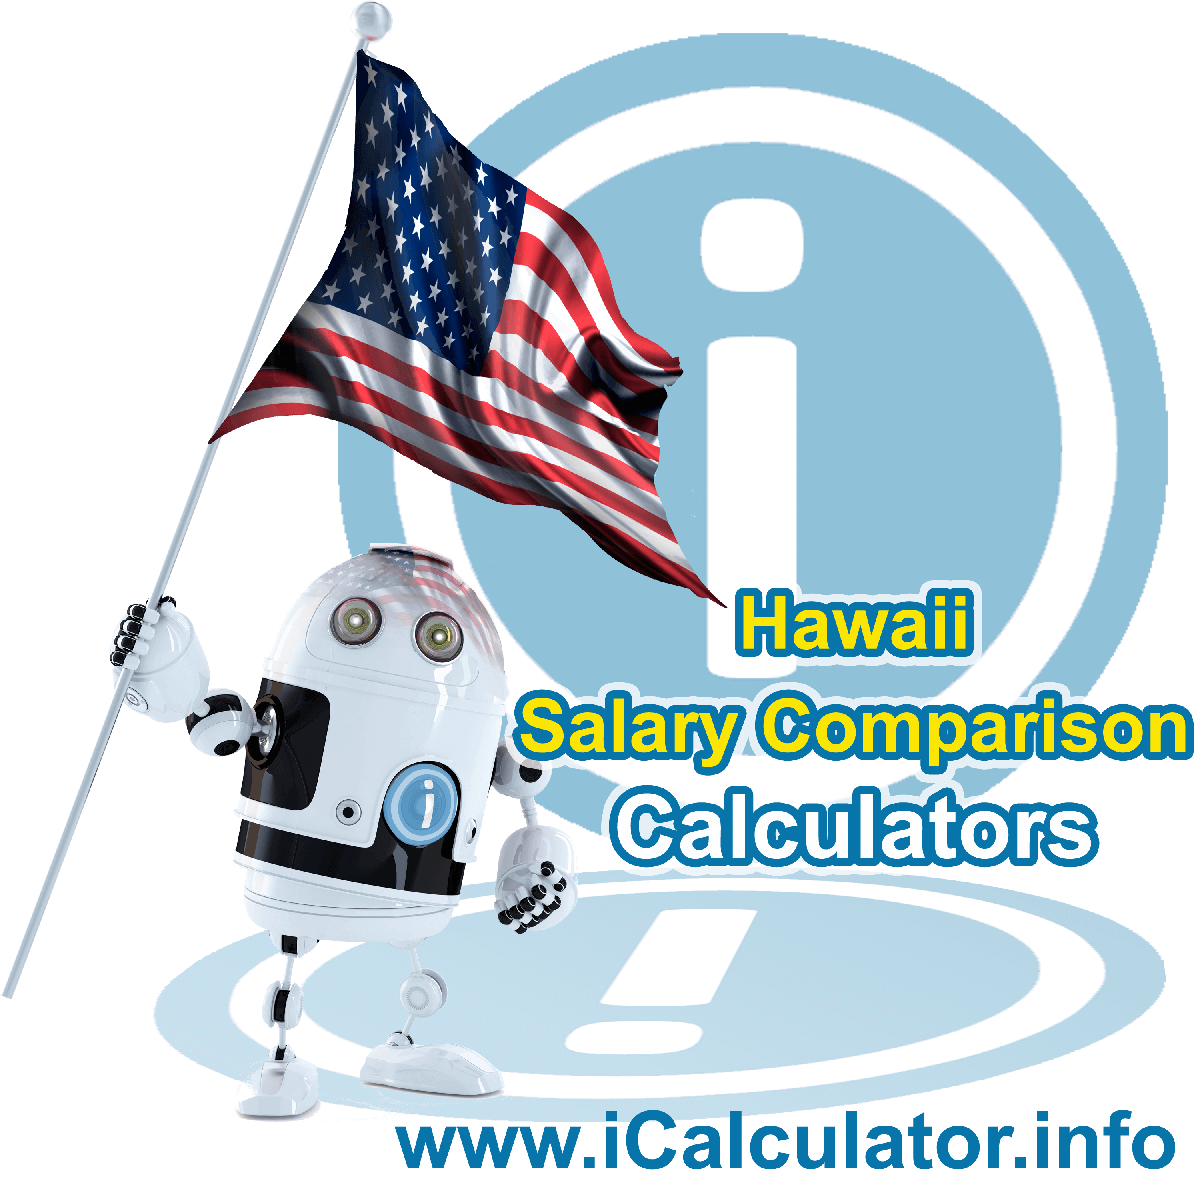 Hawaii Salary Comparison Calculator 2022 | iCalculator™ | The Hawaii Salary Comparison Calculator allows you to quickly calculate and compare upto 6 salaries in Hawaii or compare with other states for the 2022 tax year and historical tax years.